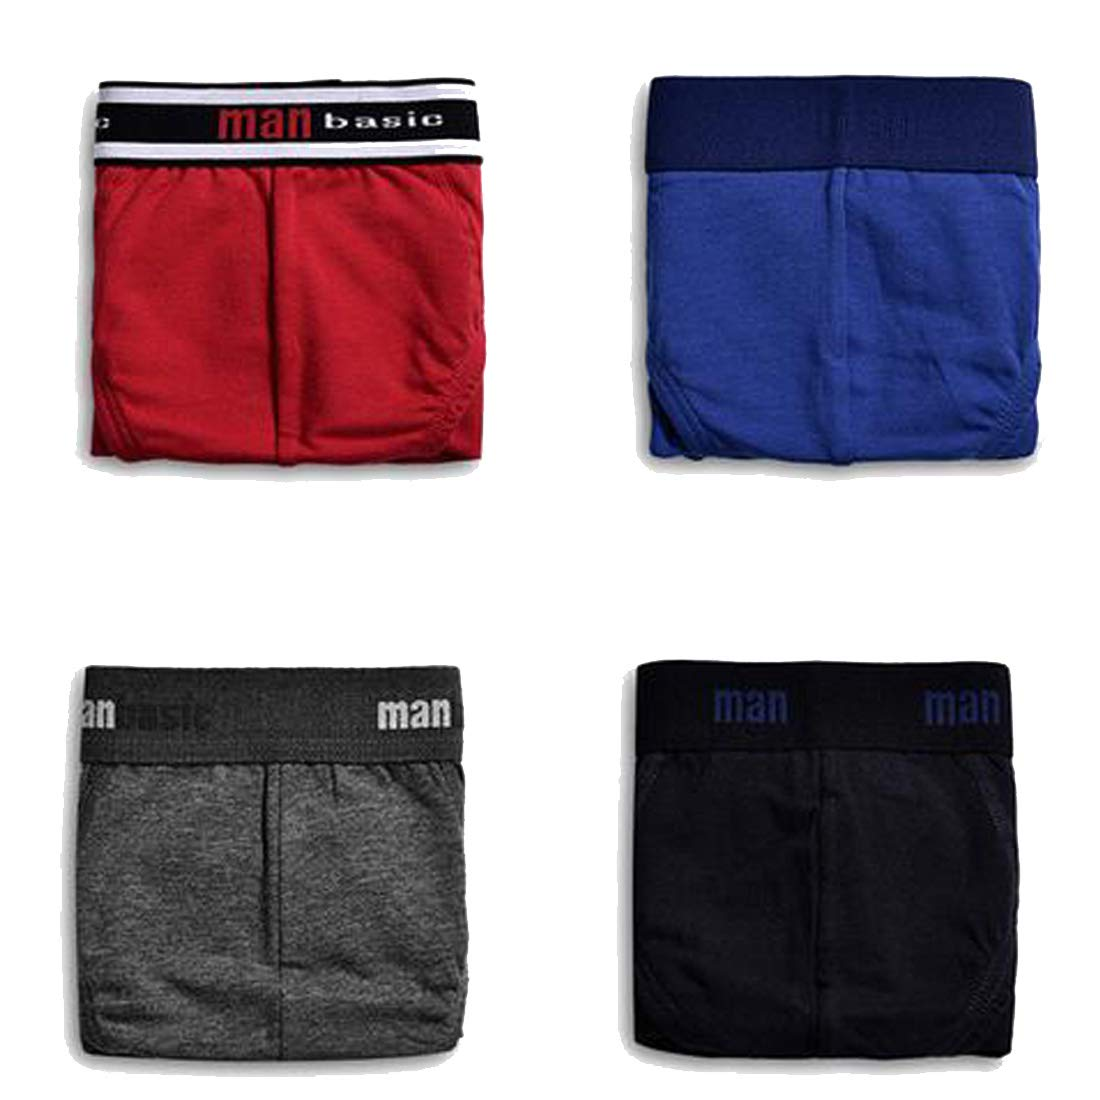 Osave Mens 4-Pack Cotton Full-Cut Low Rise Briefs